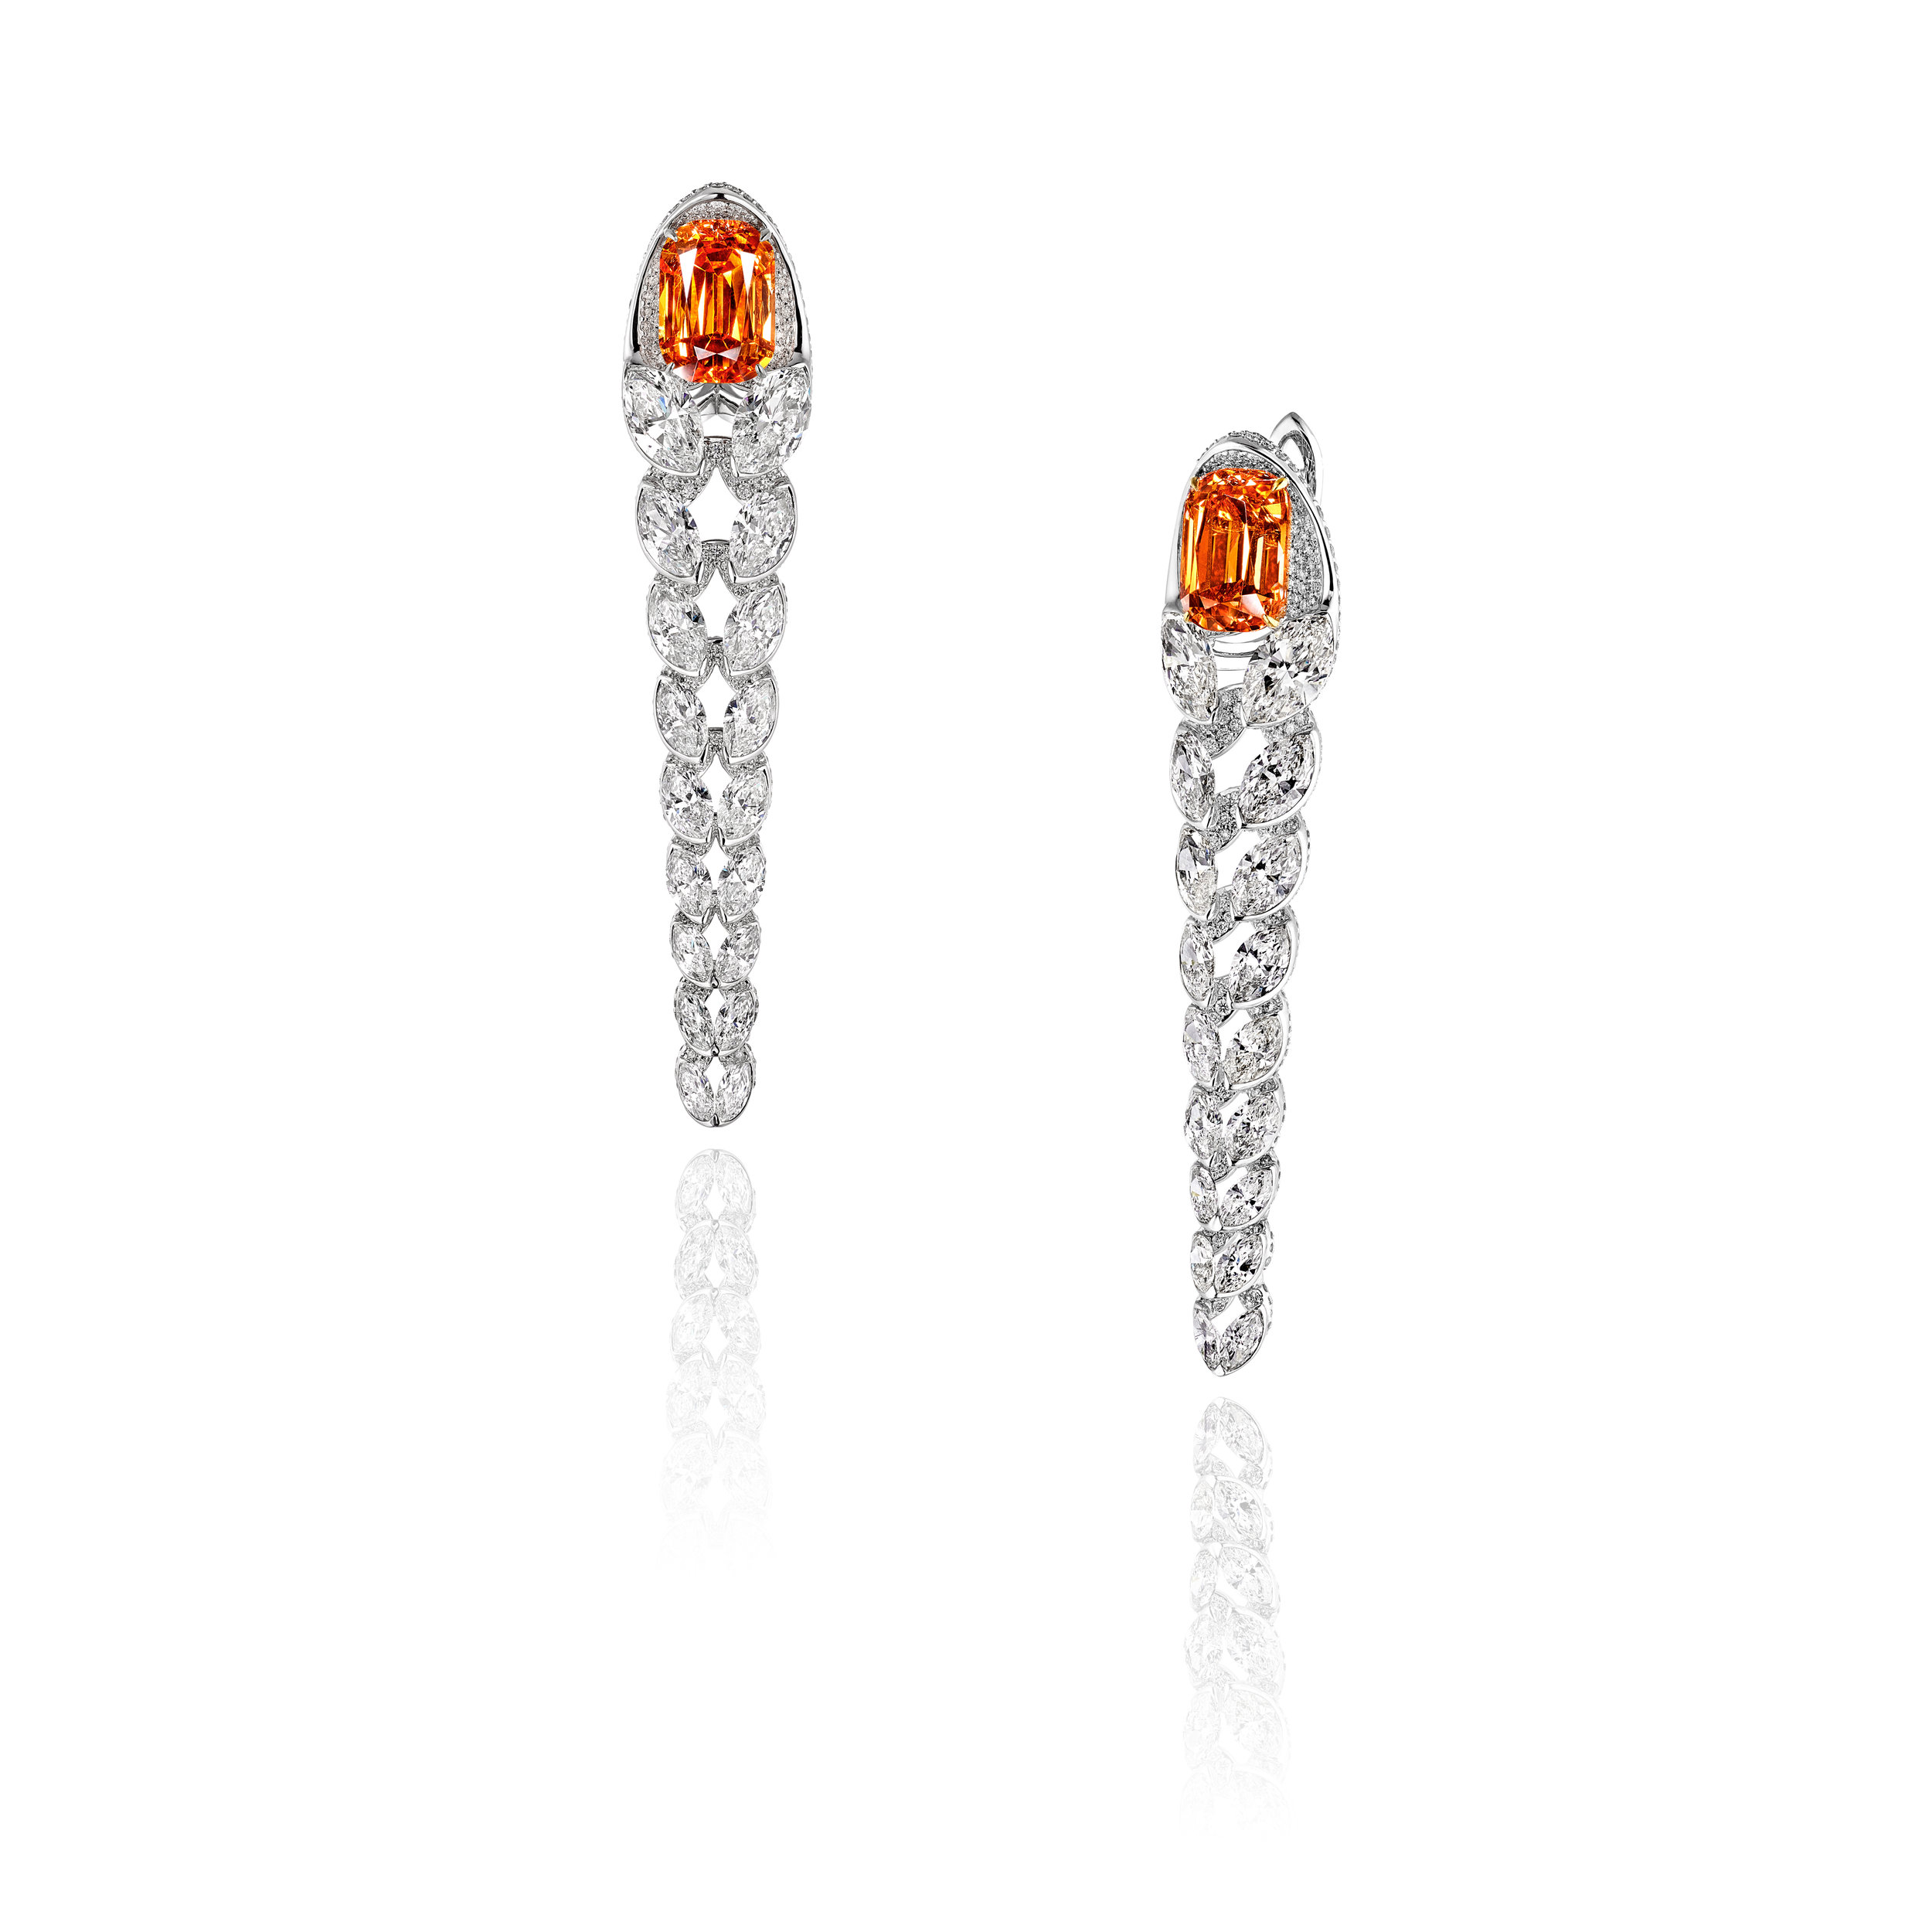 Mandarin Garnet Chandelier Earrings